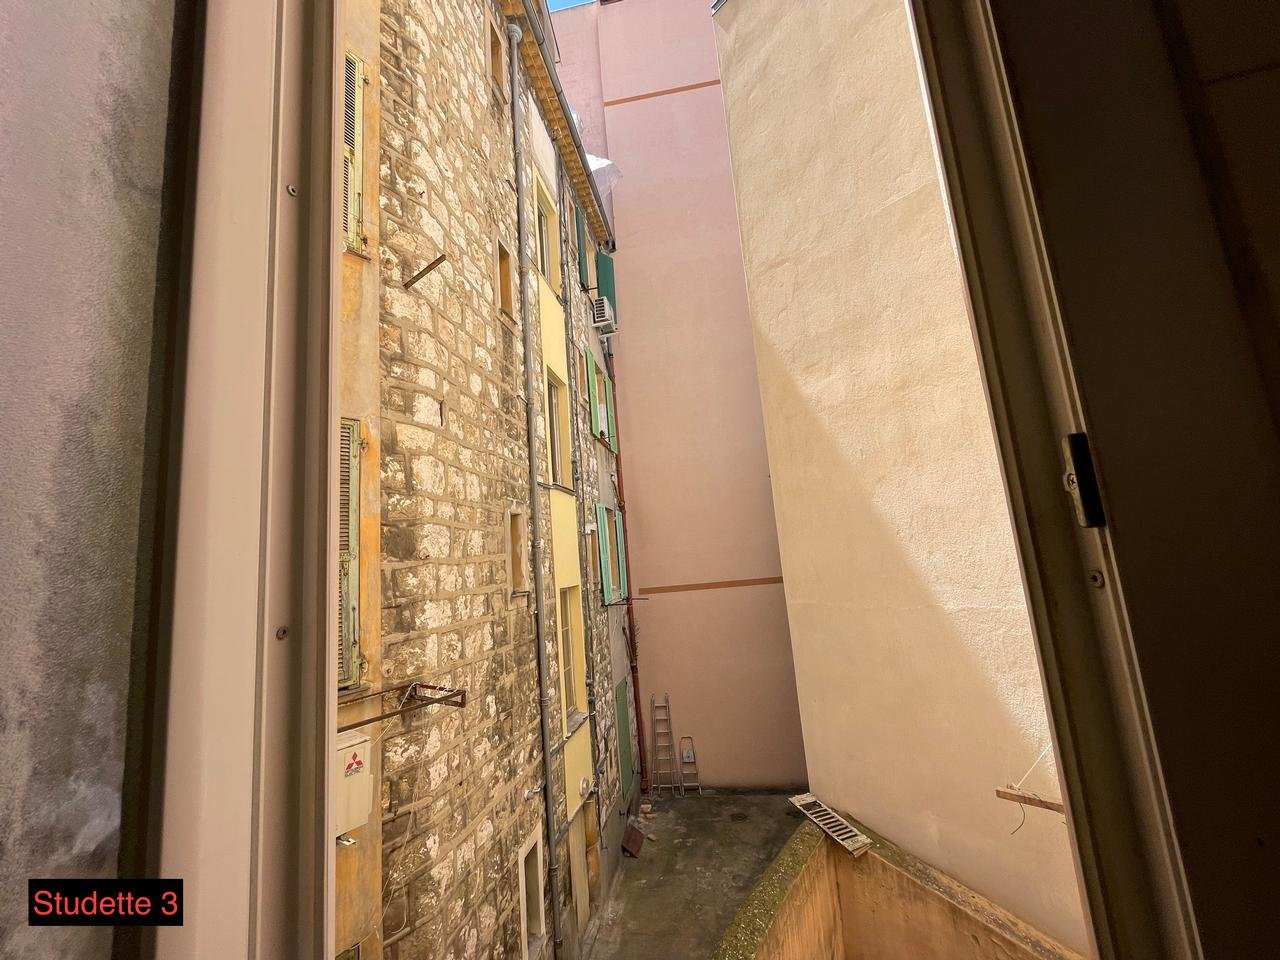 Appartement  1 Rooms 58.79m2  for sale   258000 €